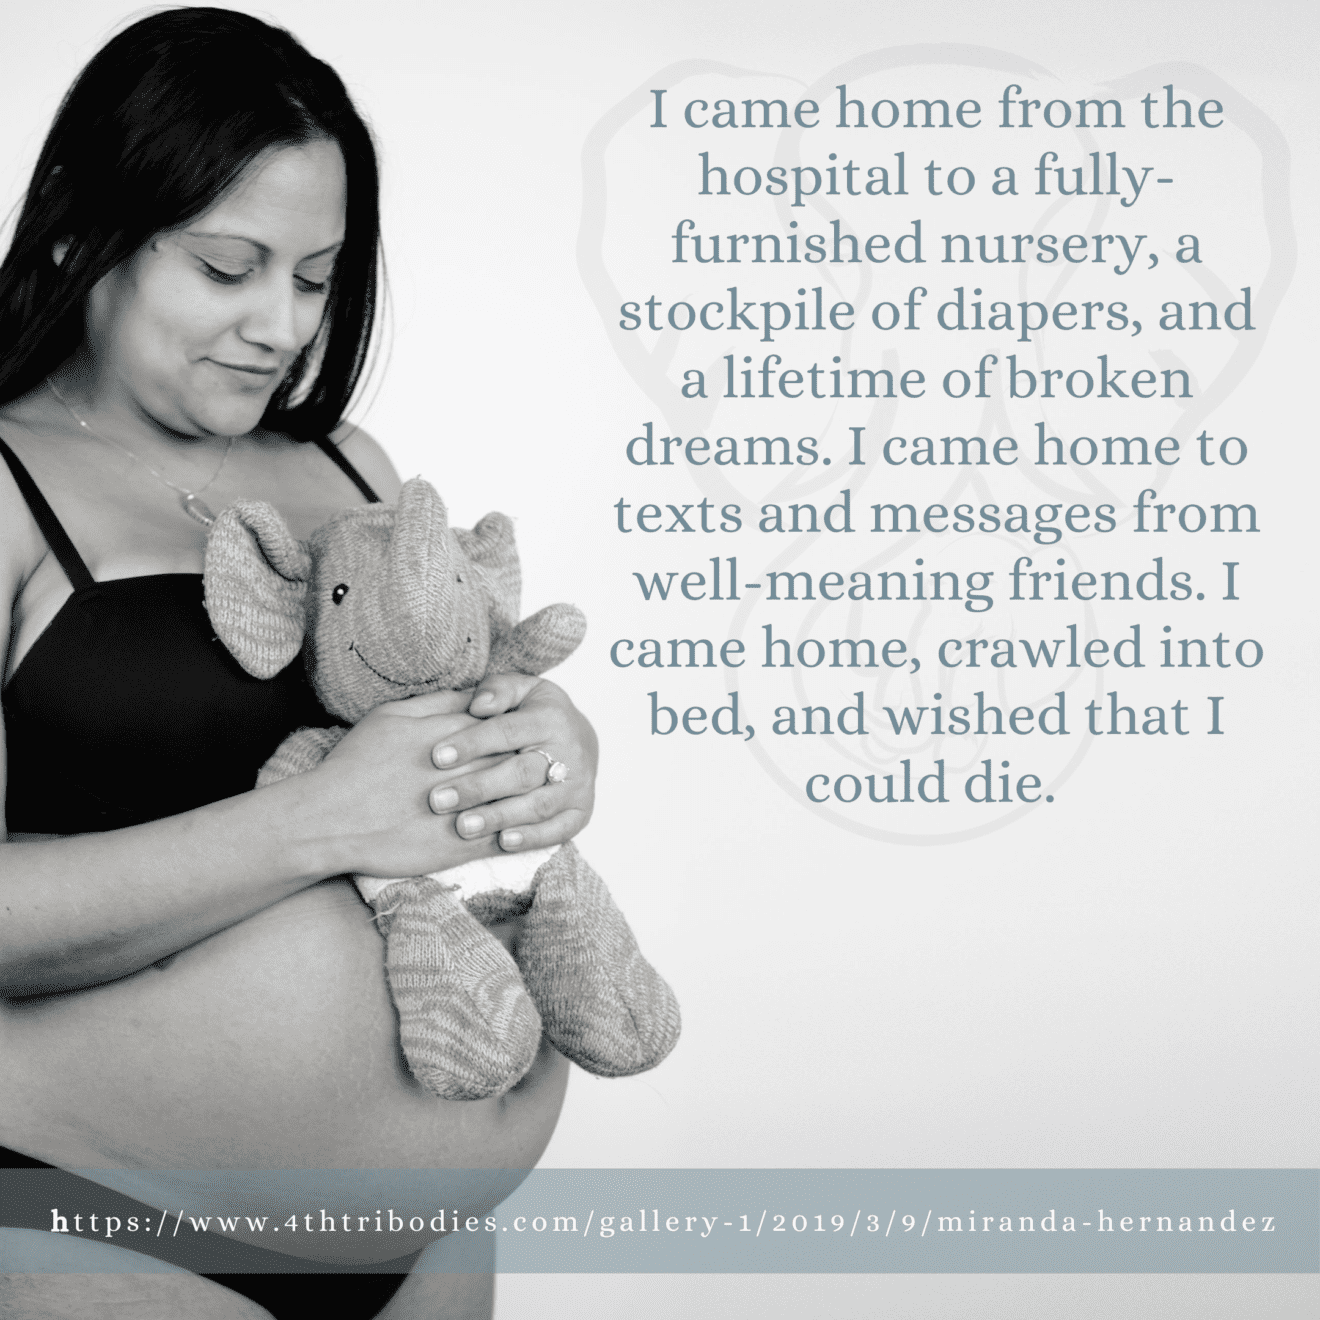 I came home from the hospital to a fully-furnished nursery, a stockpile of diapers, and a lifetime of broken dreams. I came home to texts and messages from well-meaning friends. I came home, crawled into bed, and wished that I could die.